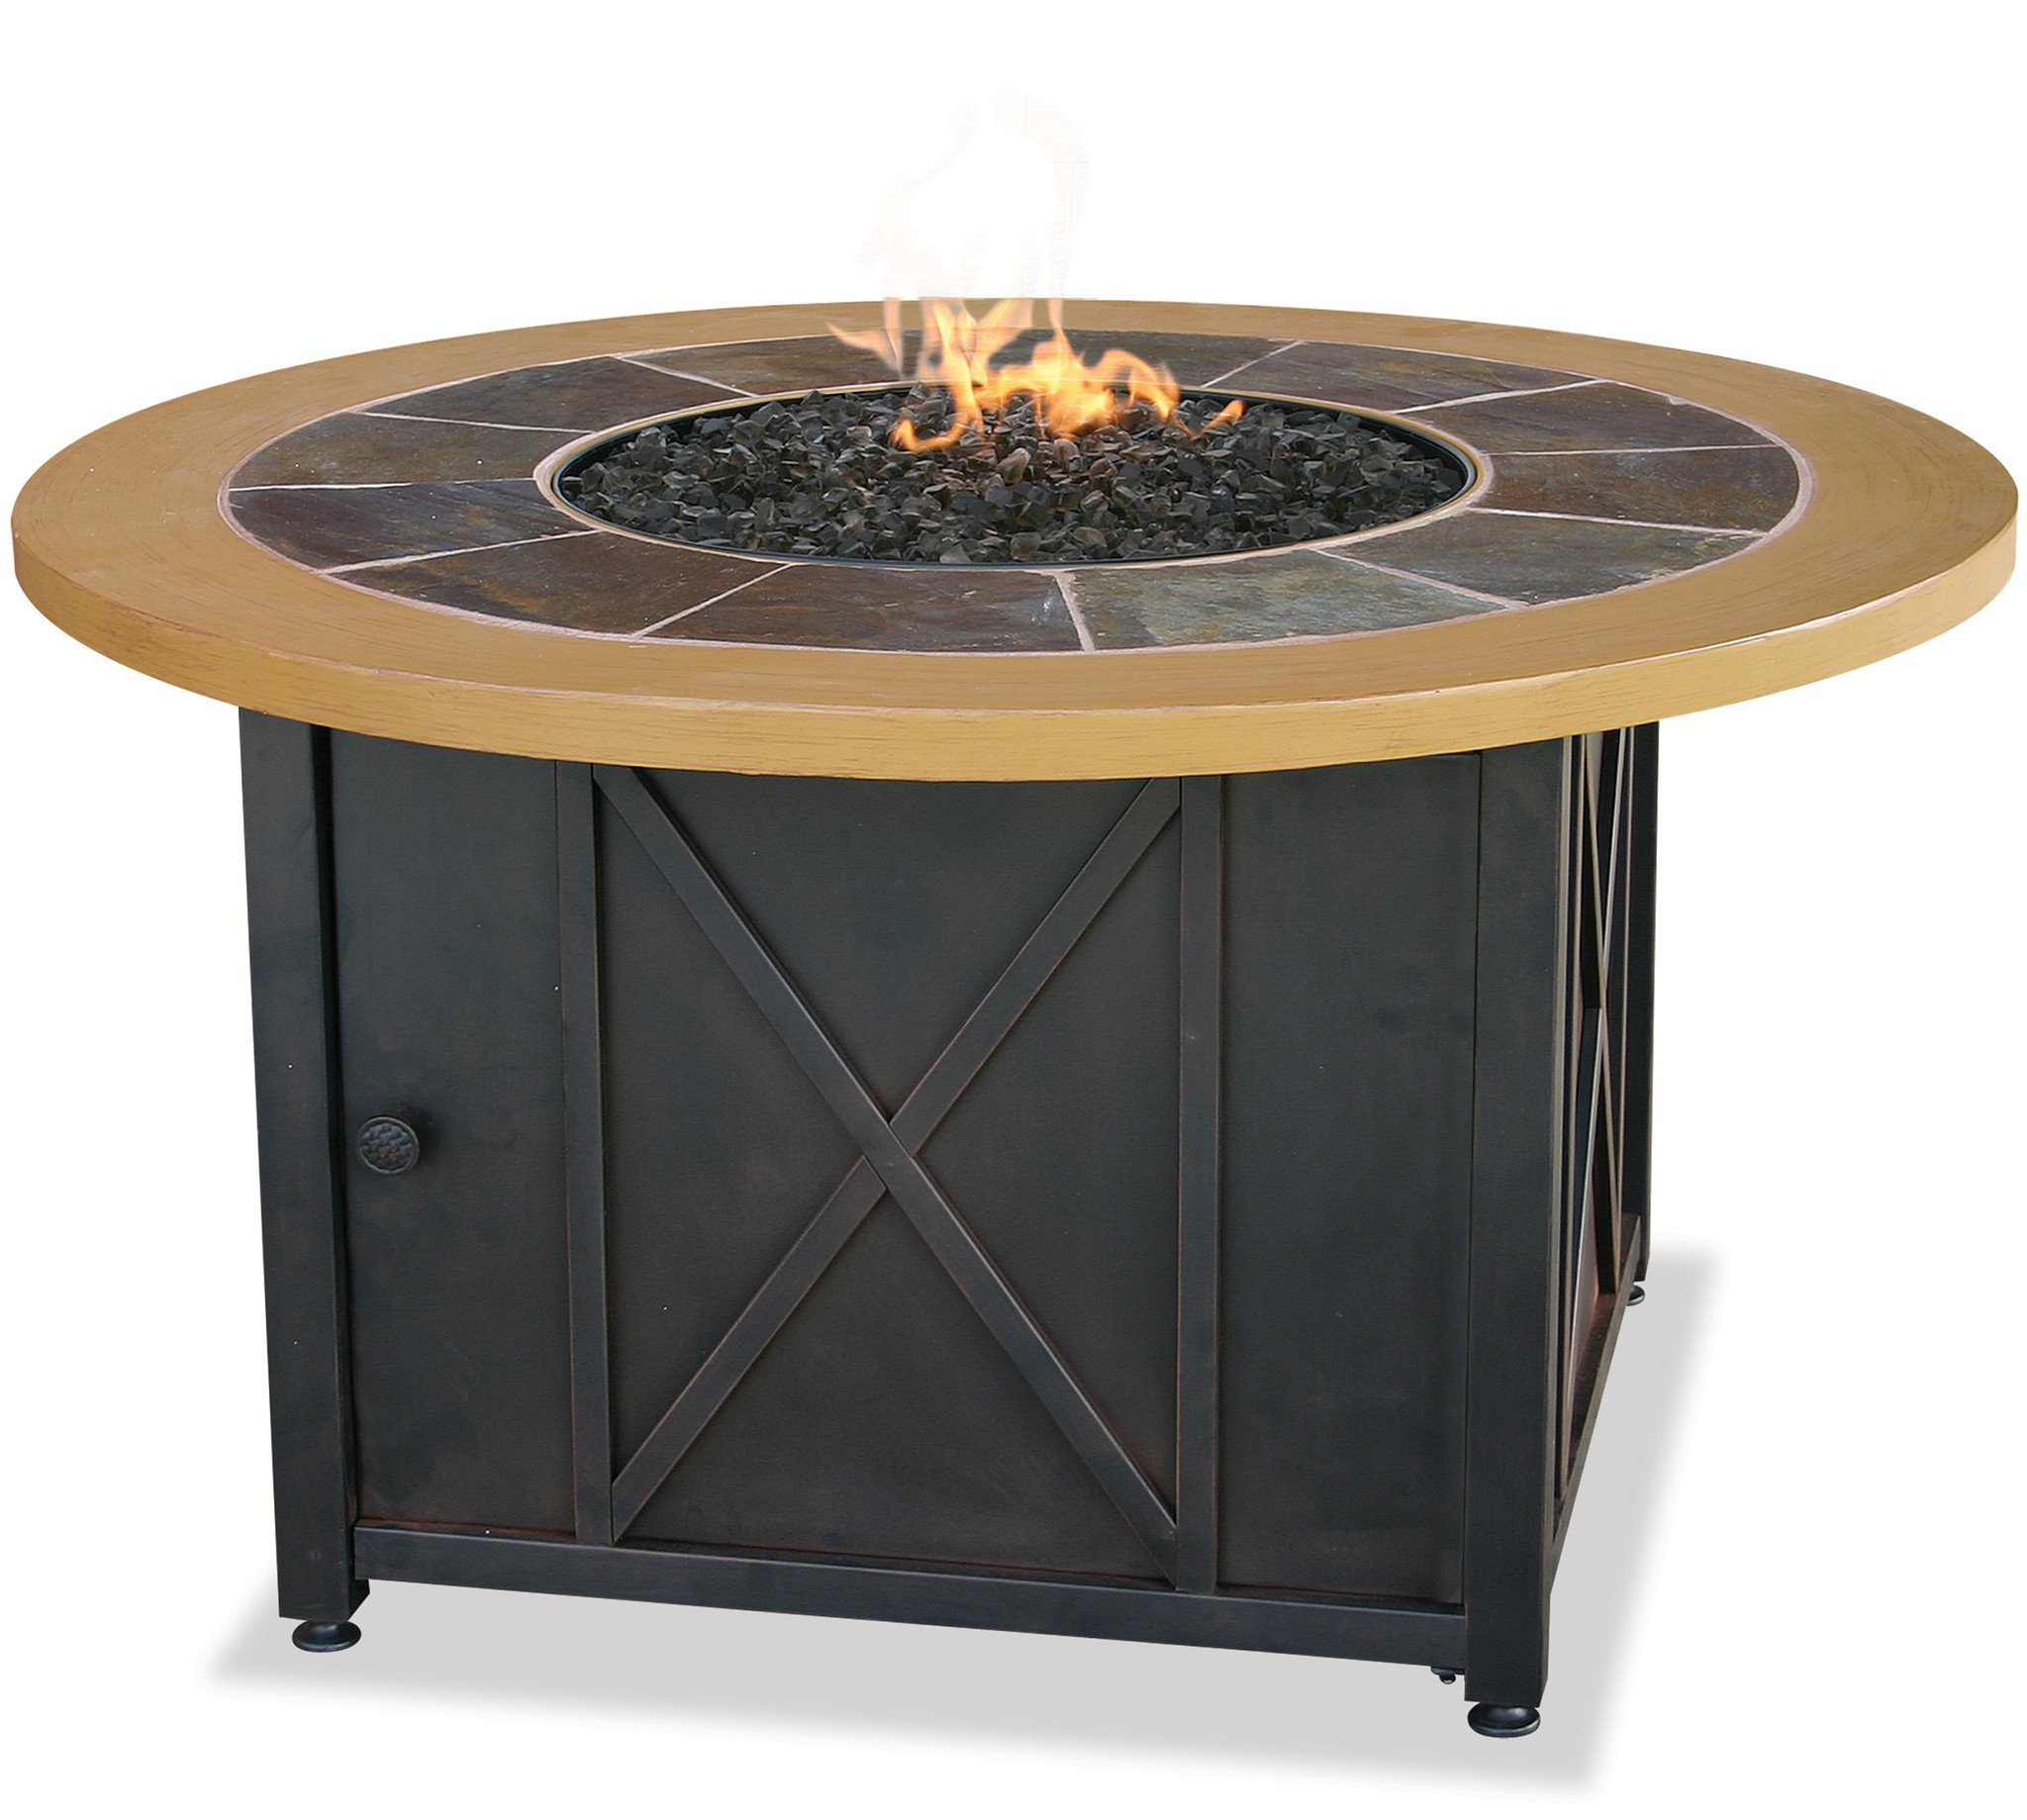 Uniflame LP Gas Outdoor Firebowl with Slate & Faux Wood Mantel